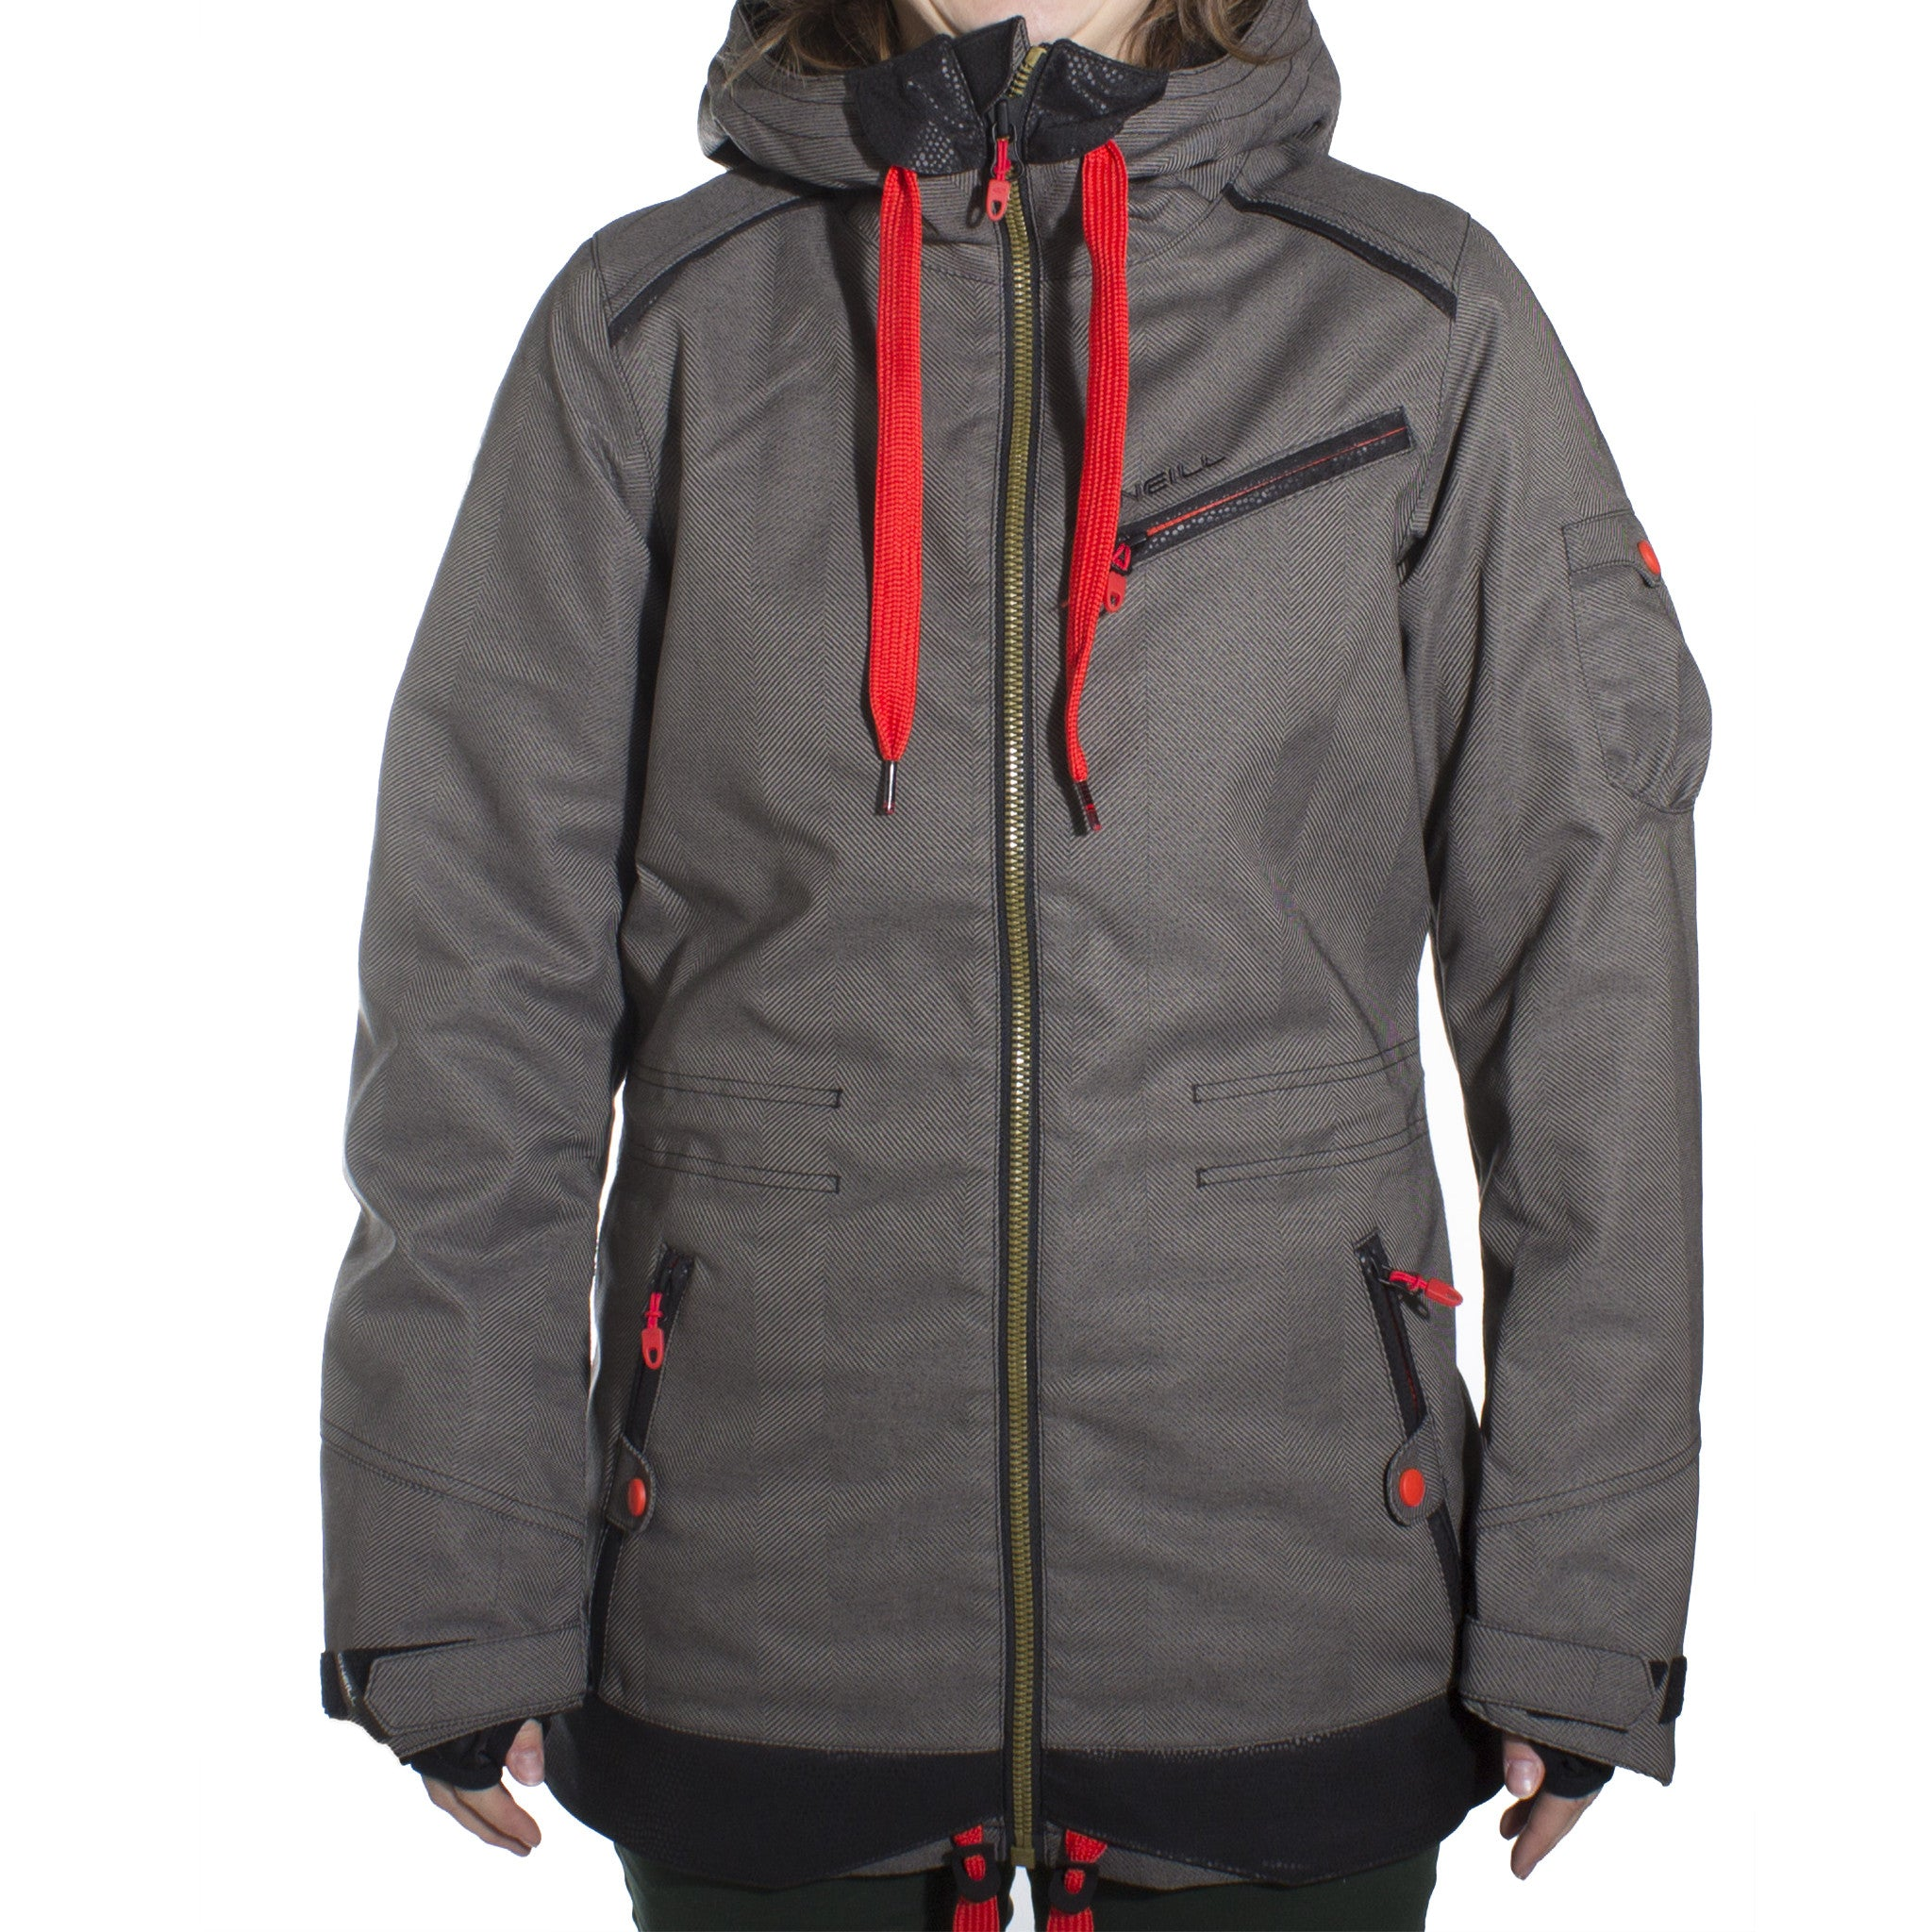 Sparkle Jacket Black Out Womens - Stoked Boardshop  - 1